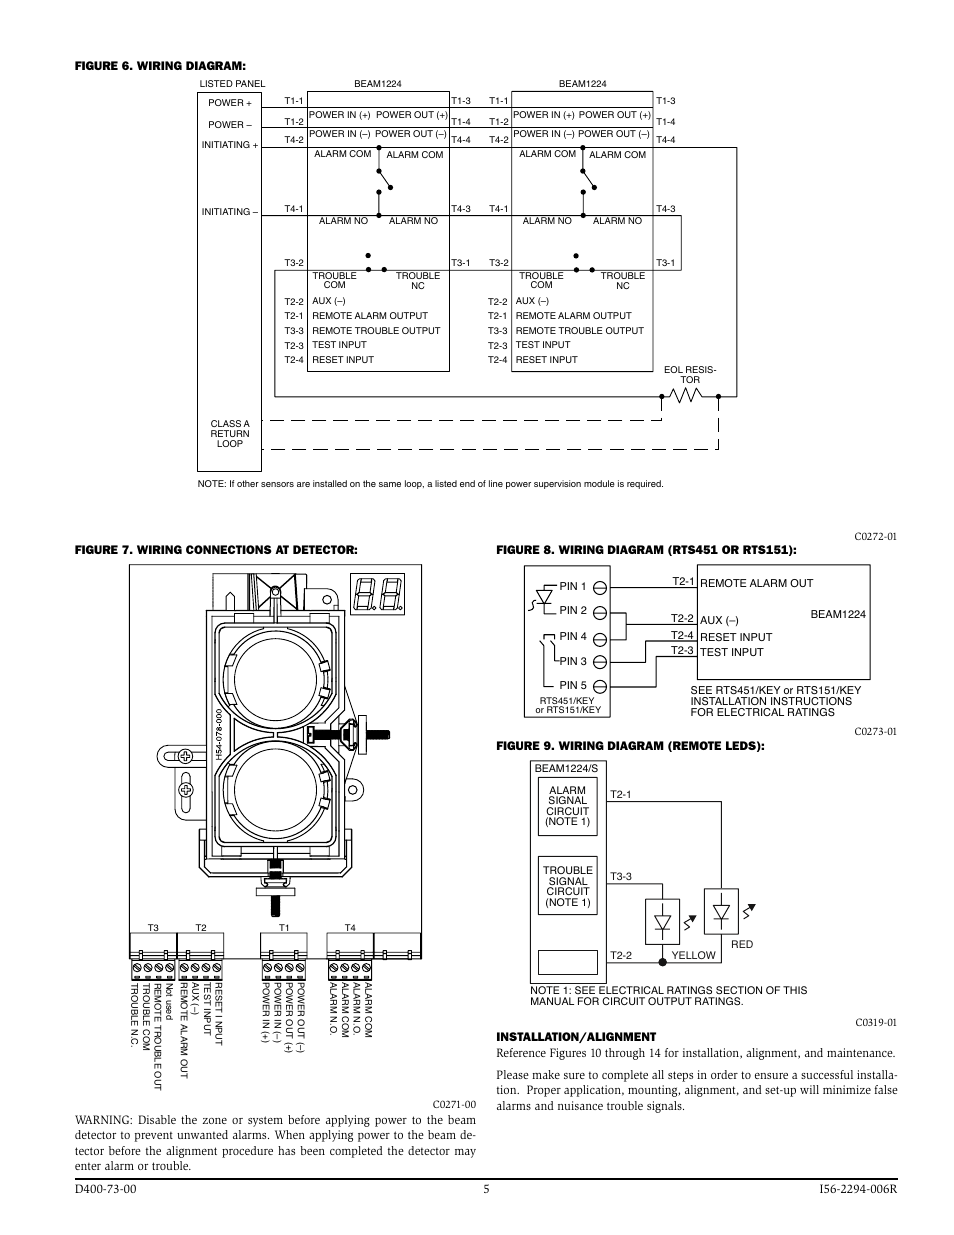 system sensor beam1224 beam1224s page5 system sensor beam1224, beam1224s user manual page 5 13 rts451 wiring diagram at webbmarketing.co